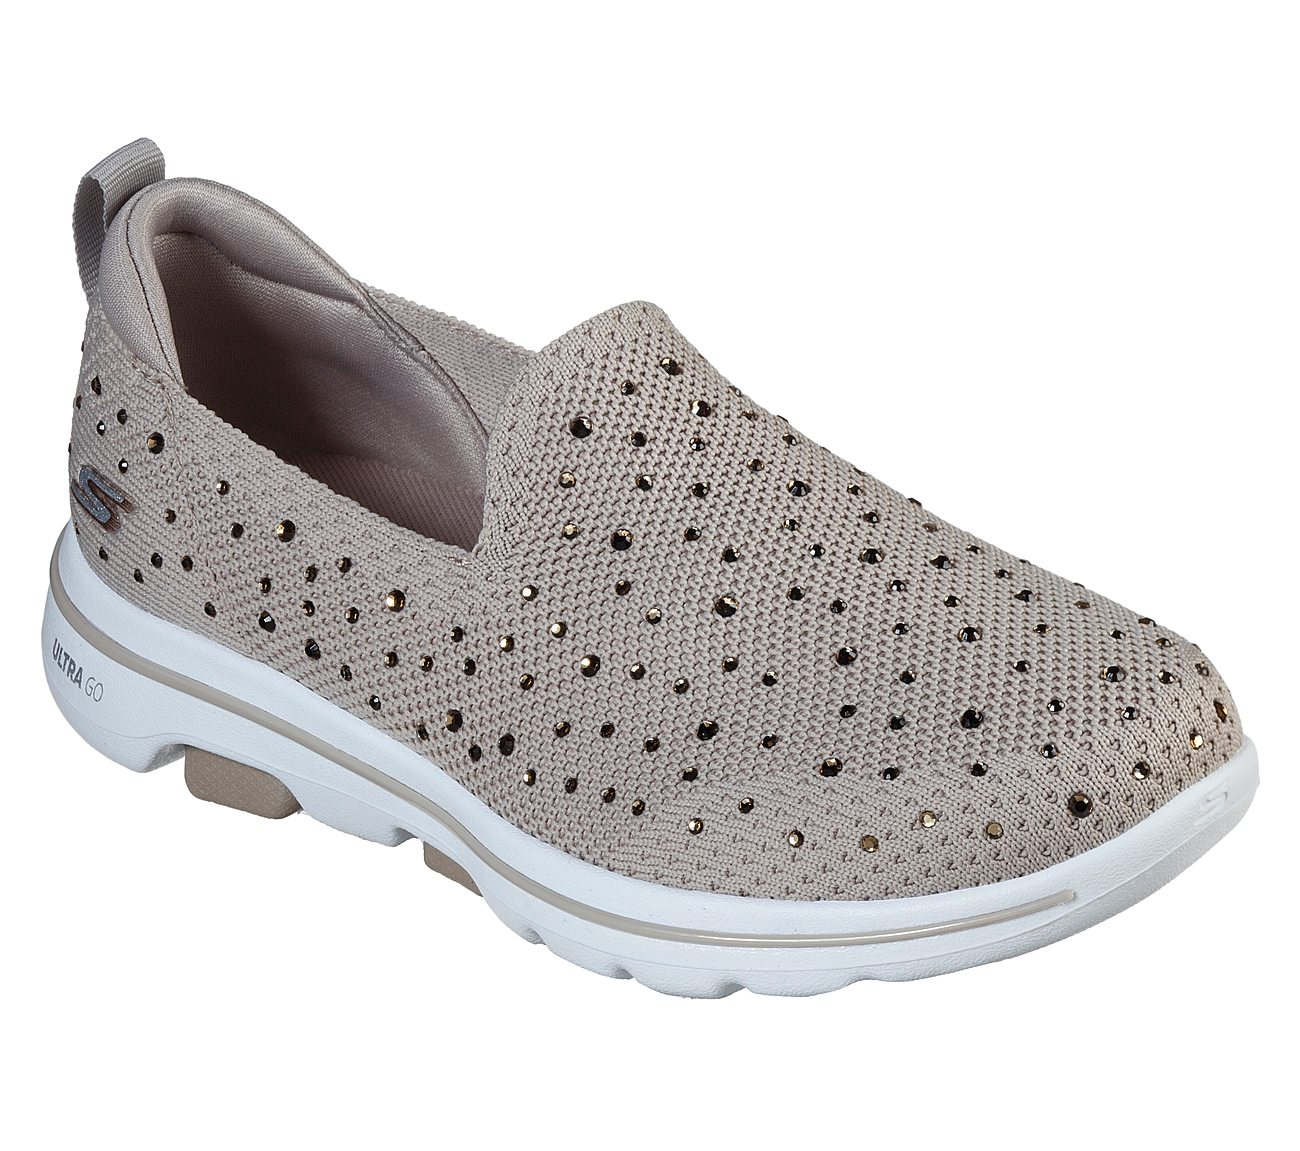 Skechers GOwalk 5 - Limelight